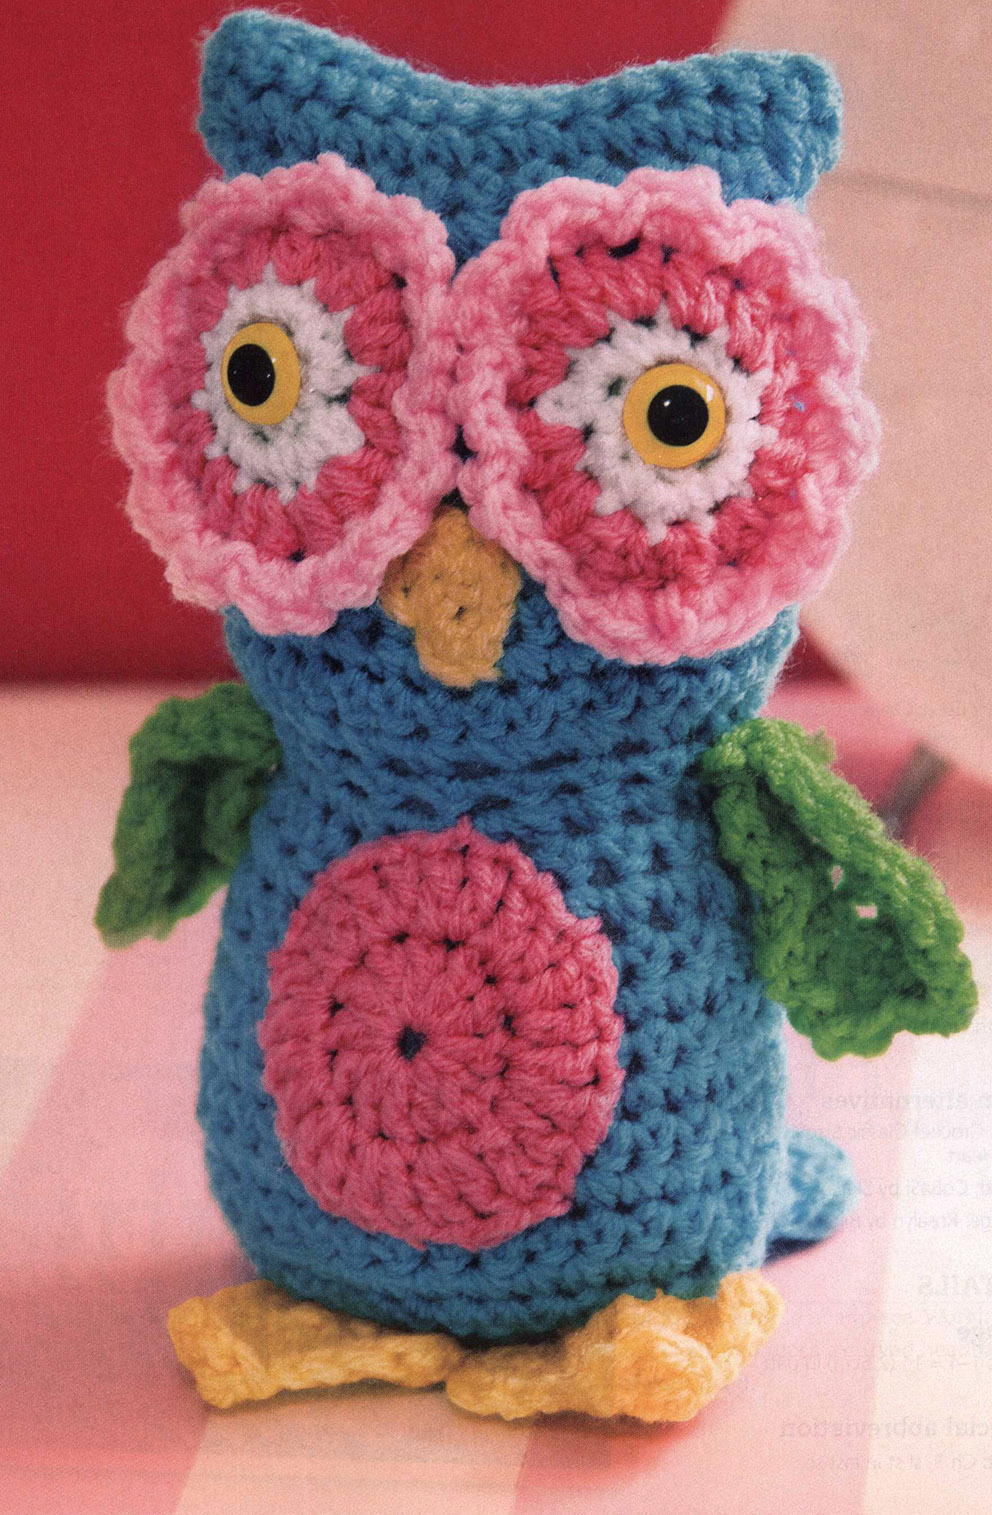 Cute crochet owl pattern crochet kingdom cute owl toy to crochet bankloansurffo Gallery